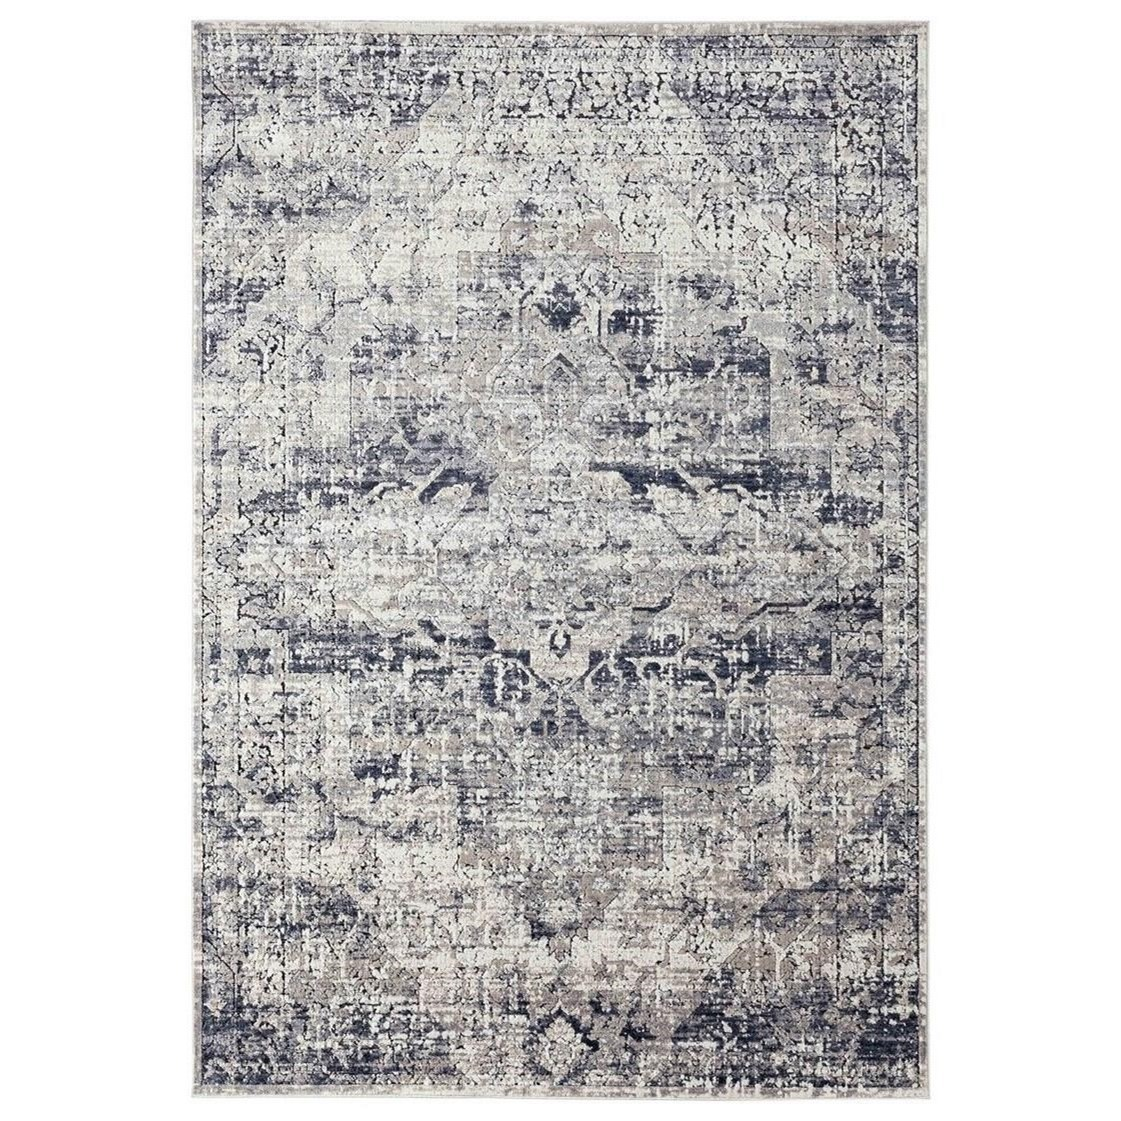 Rugs Bethea Gray 7 X 9 Rug by Uttermost at Adcock Furniture